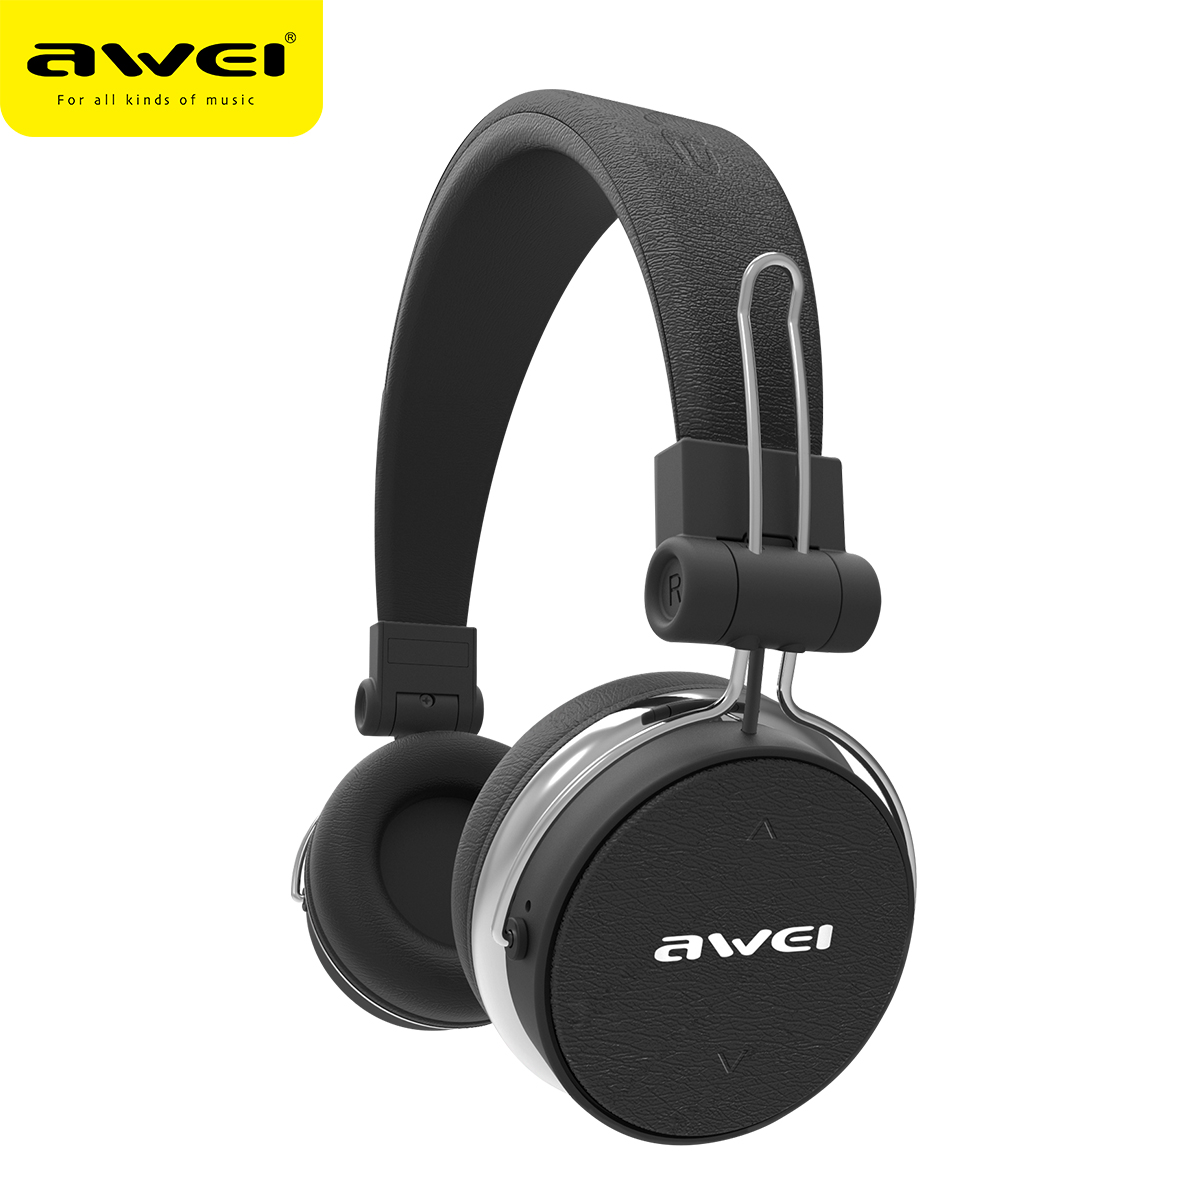 AWEI A700BL Cuffie Bluetooth Con Microfono Auricolare Senza Fili Auricolare Senza Fili Stereo Casque Auricolare Auriculares Kulakl k